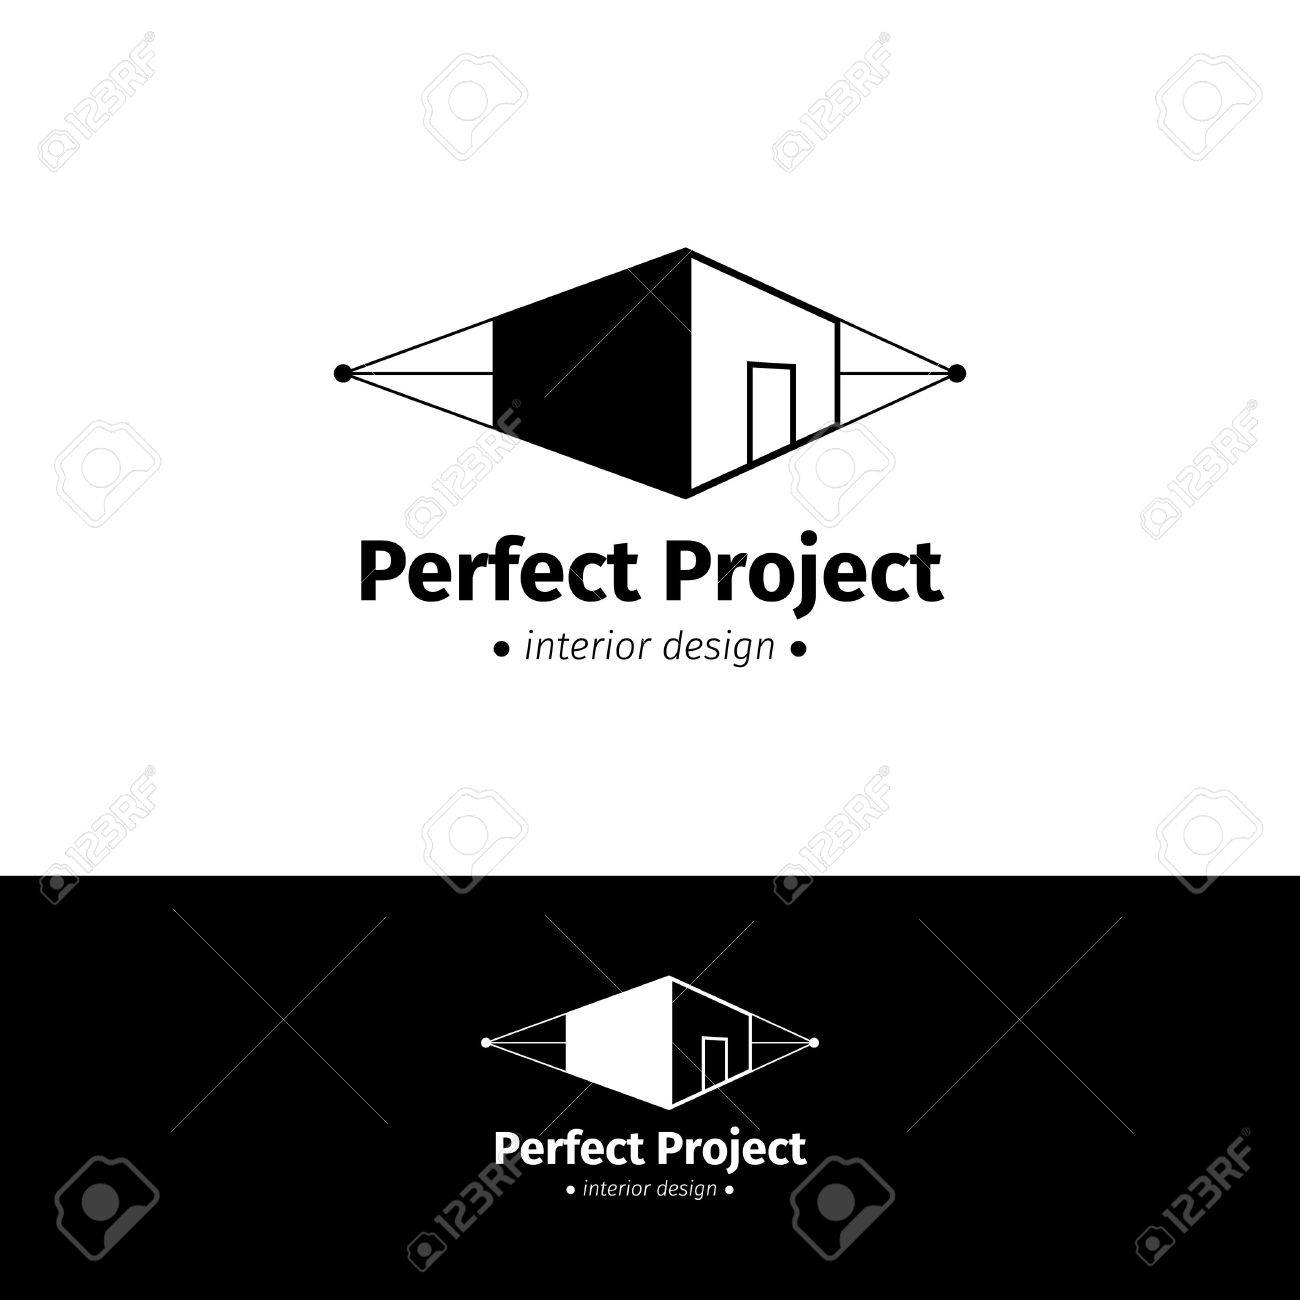 House design logo - Vector Modern Minimalist House Design Logo Stock Vector 43806428